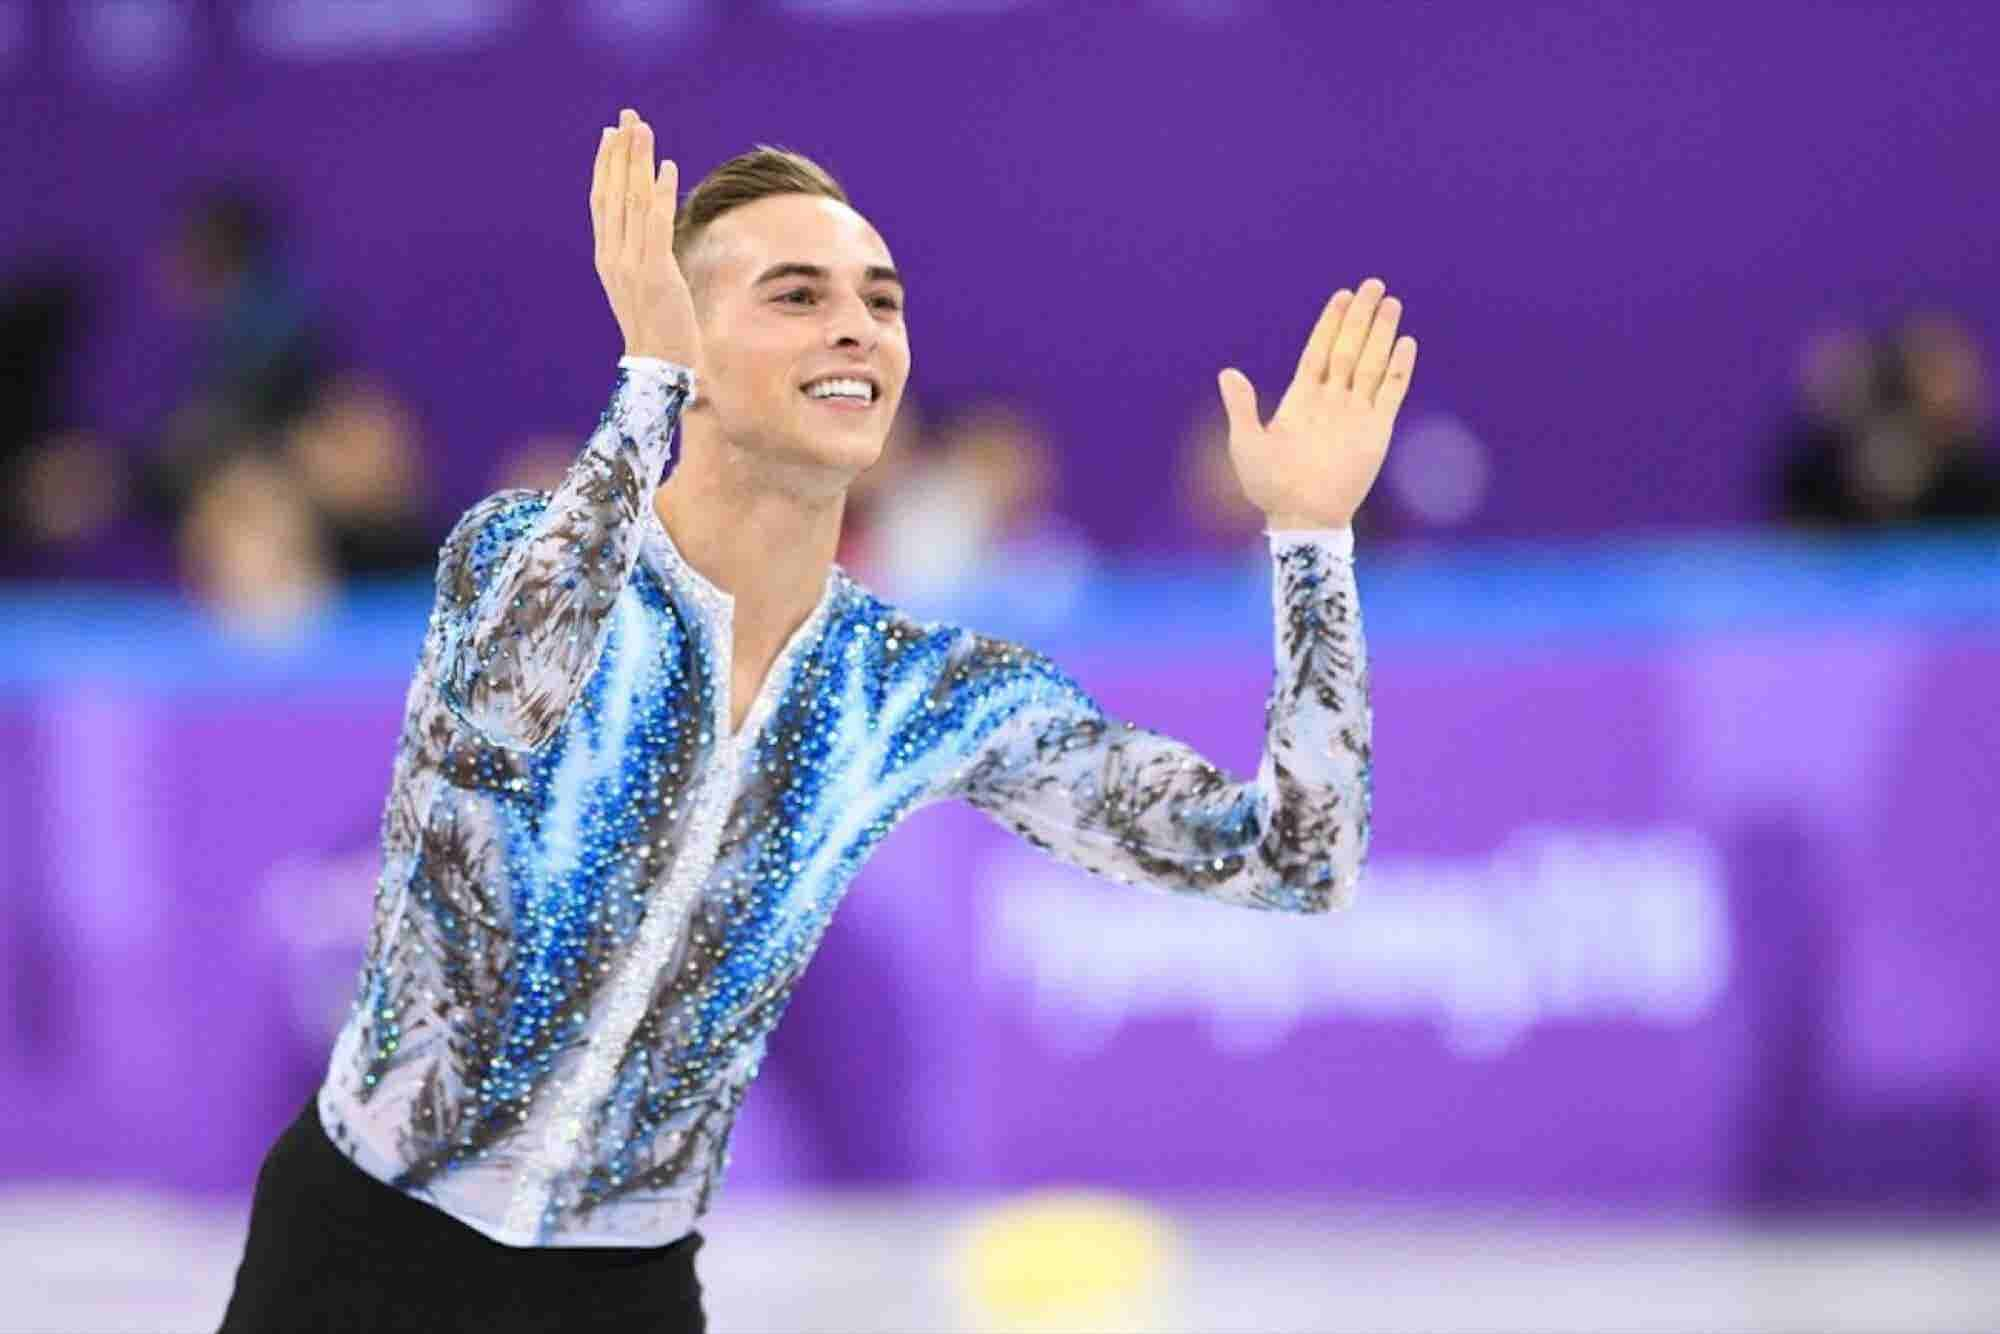 10 Jaw-Droppingly Awesome and Motivational Tweets From Olympic Figure...